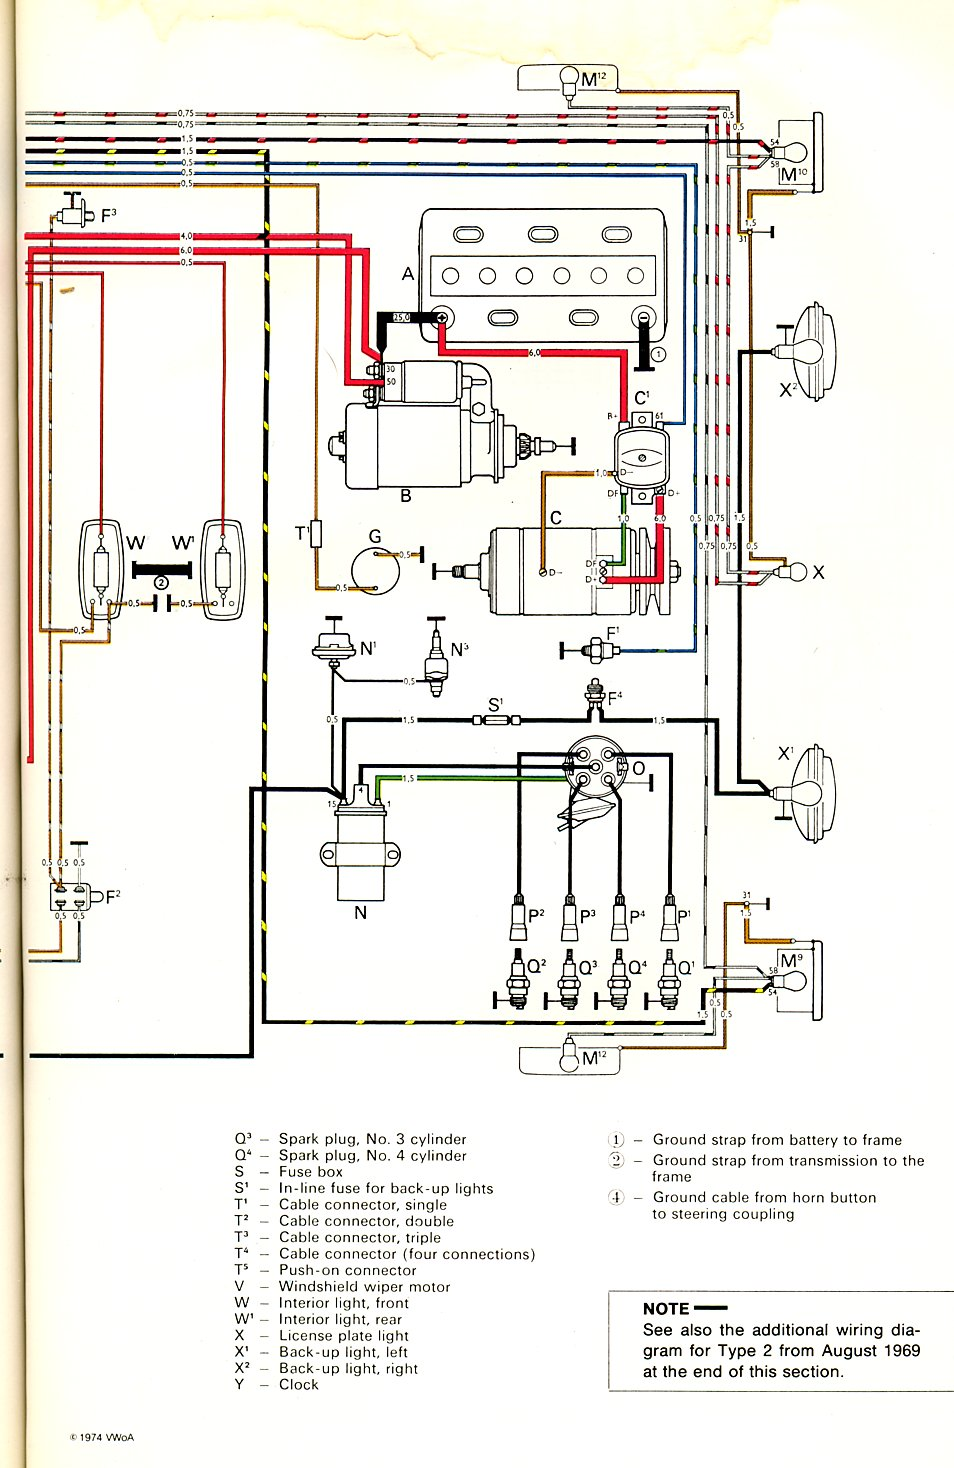 baybus_70b 1970 bus wiring diagram thegoldenbug com 74 vw bus wiring diagram at nearapp.co